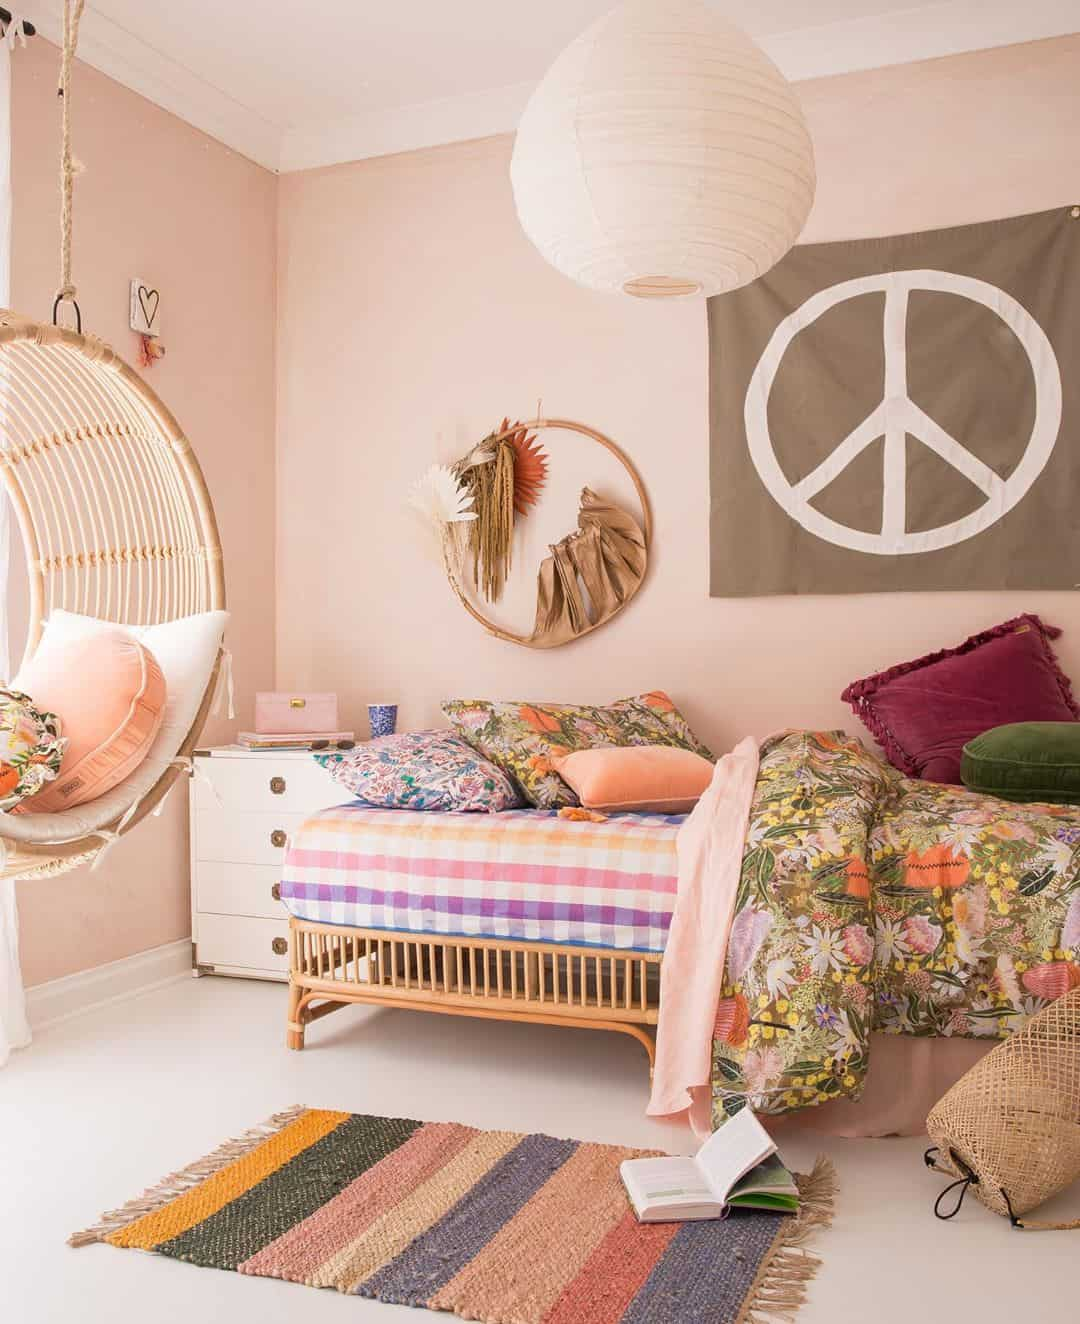 Teen room 2020: Newest ideas for teen room design